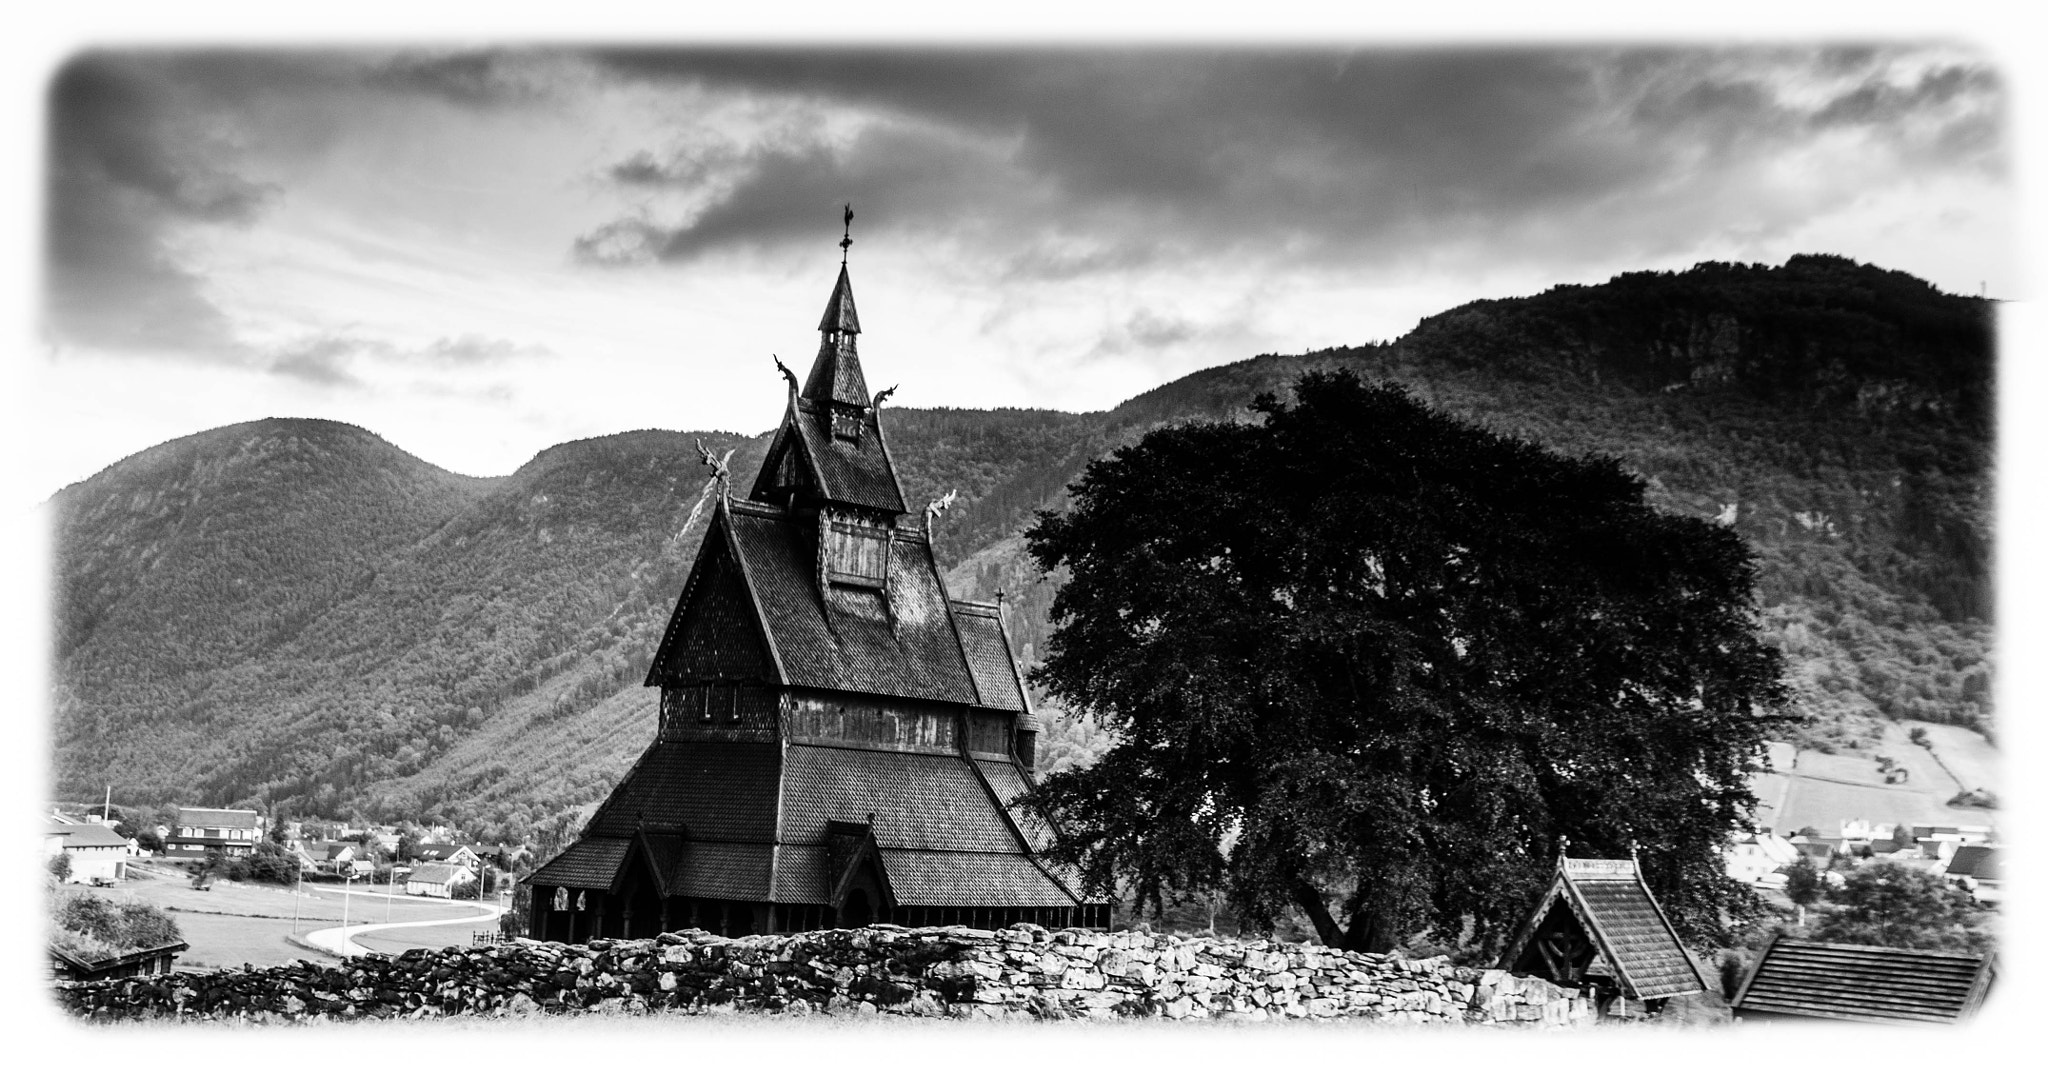 Photograph Hopperstad Stave Church by Gopal S on 500px